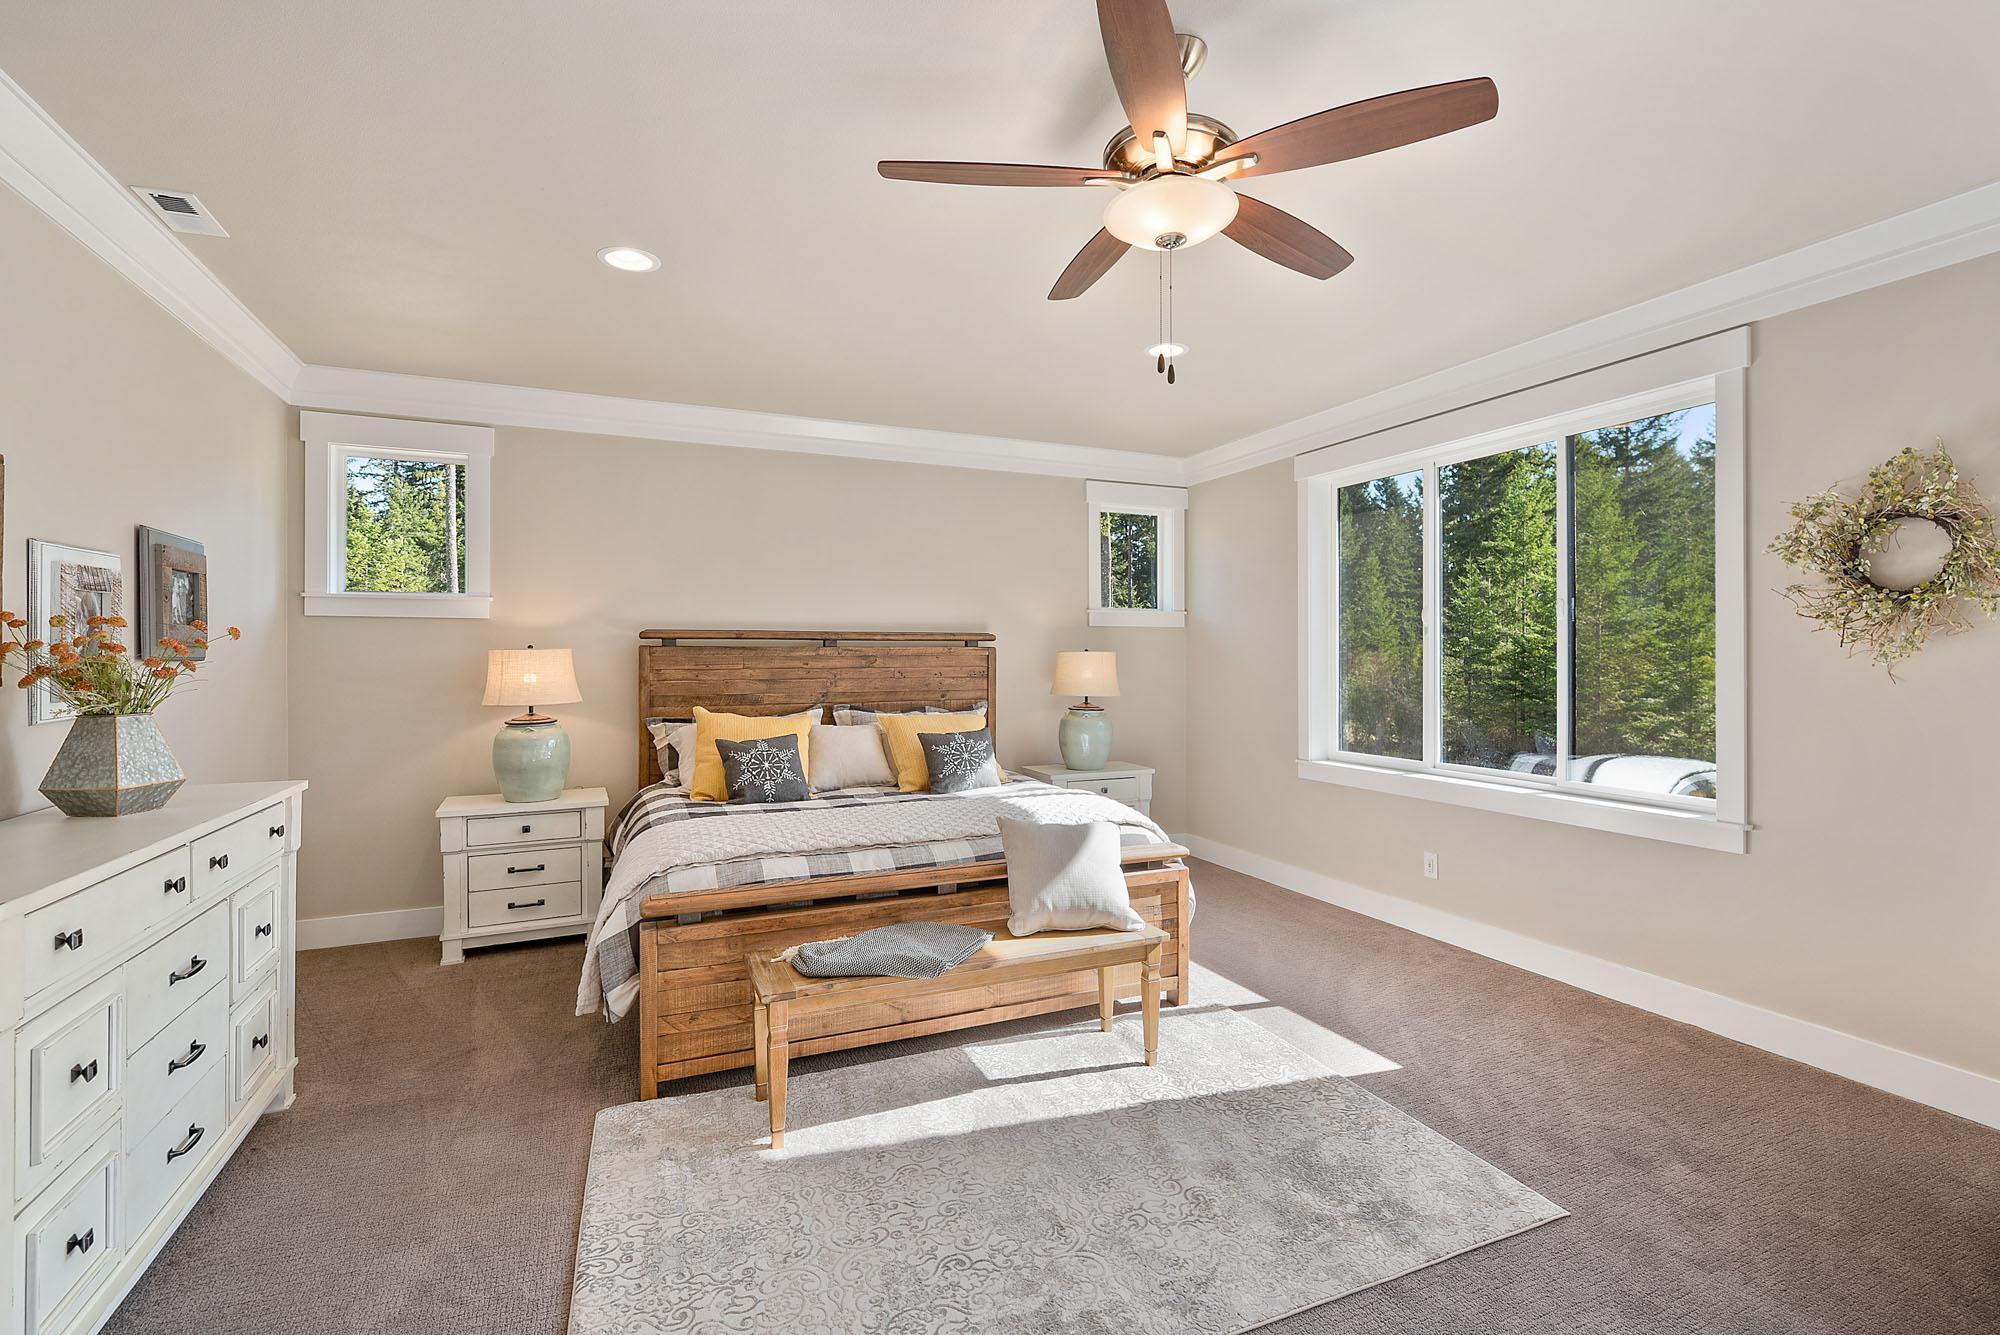 Bedroom featured in the Plan 263 By Schneider Family Homes in Seattle-Bellevue, WA